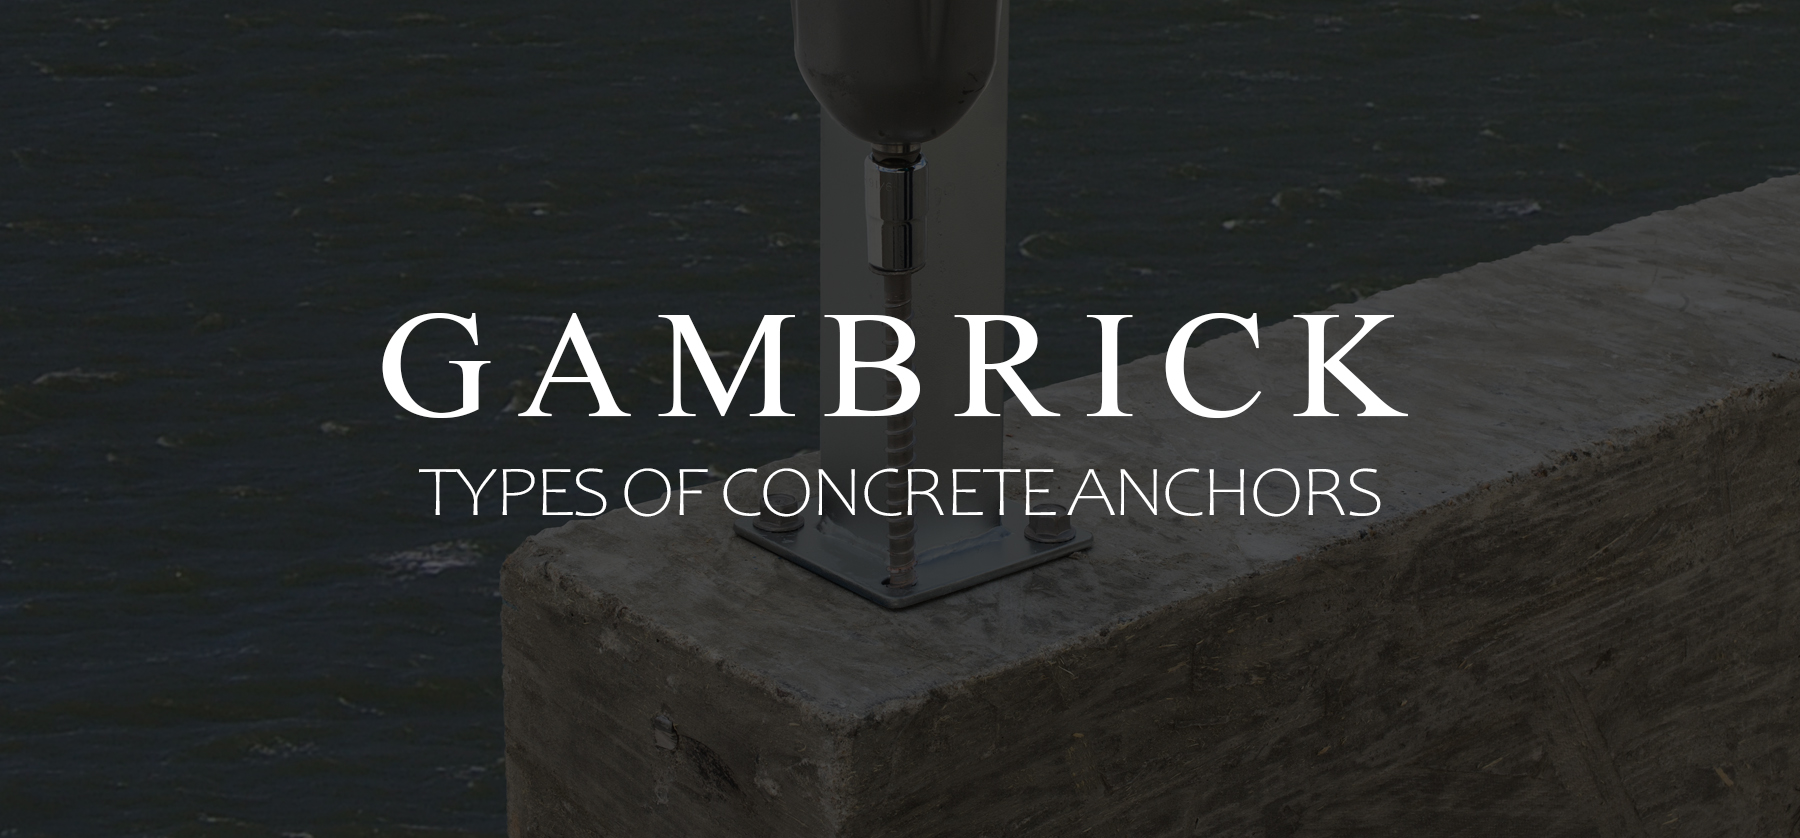 types of concrete anchors banner pic